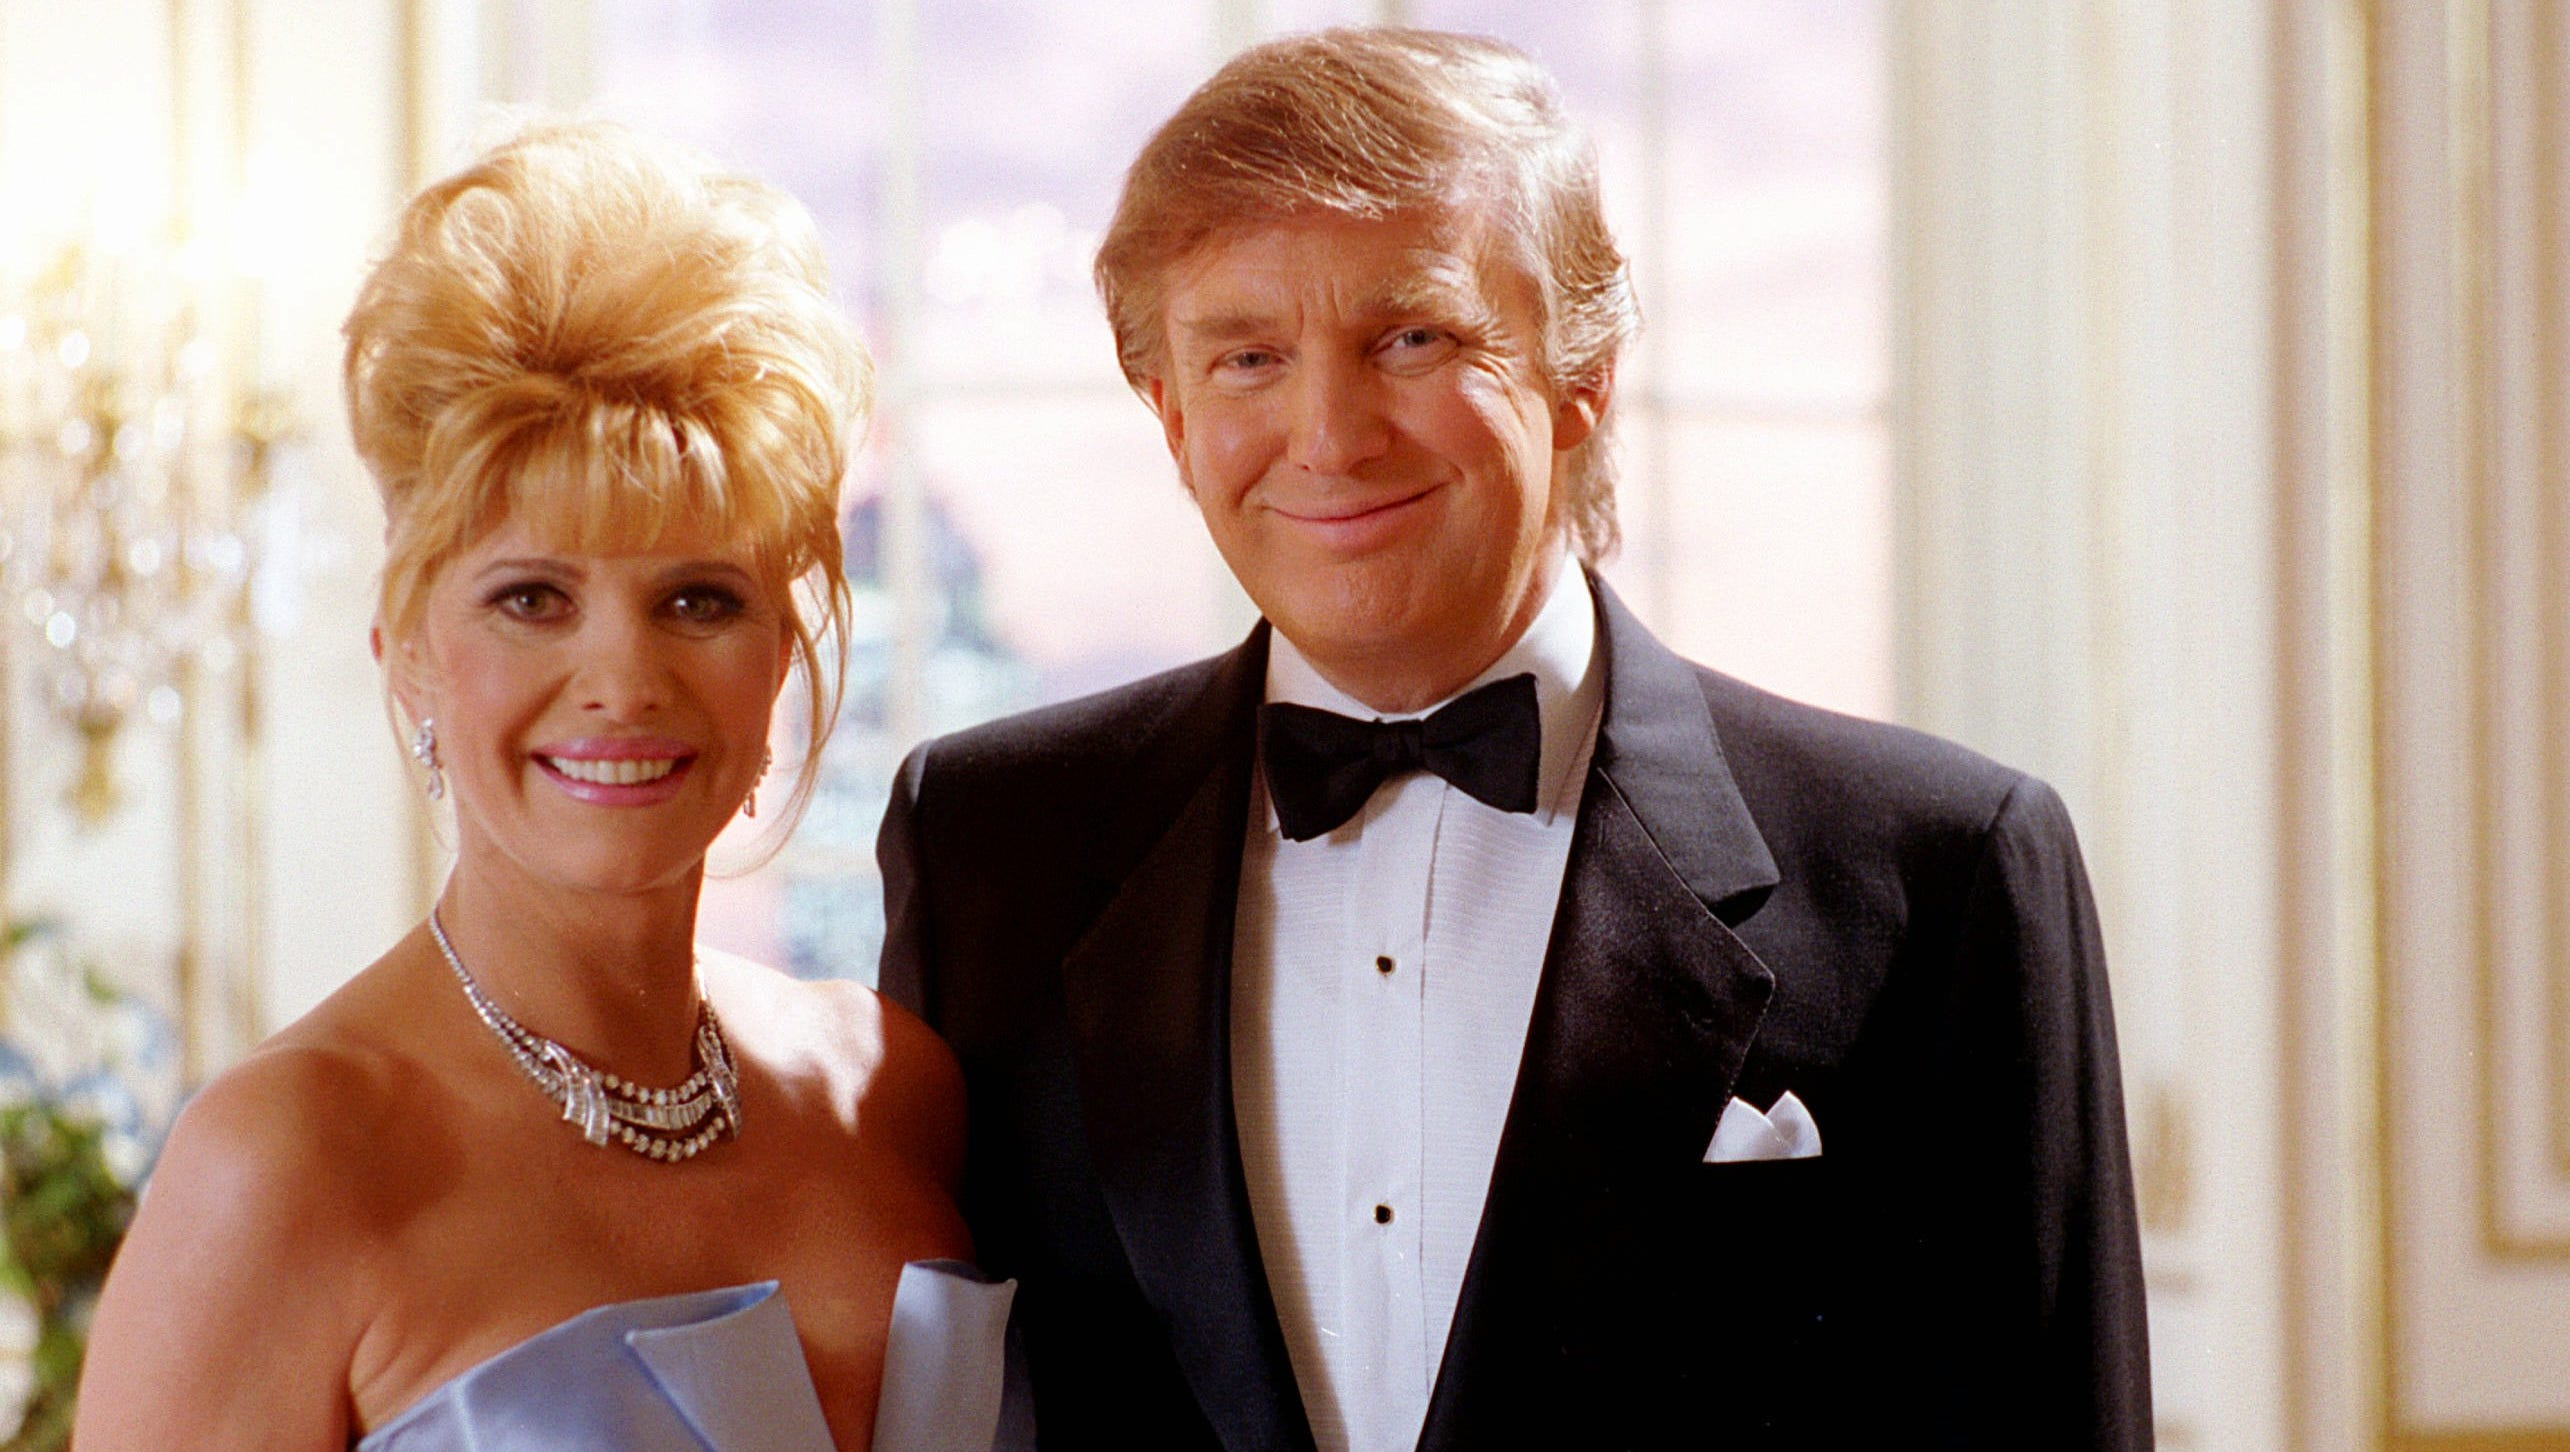 Trump's first wife, Ivana, on election: 'He doesn't like to lose'